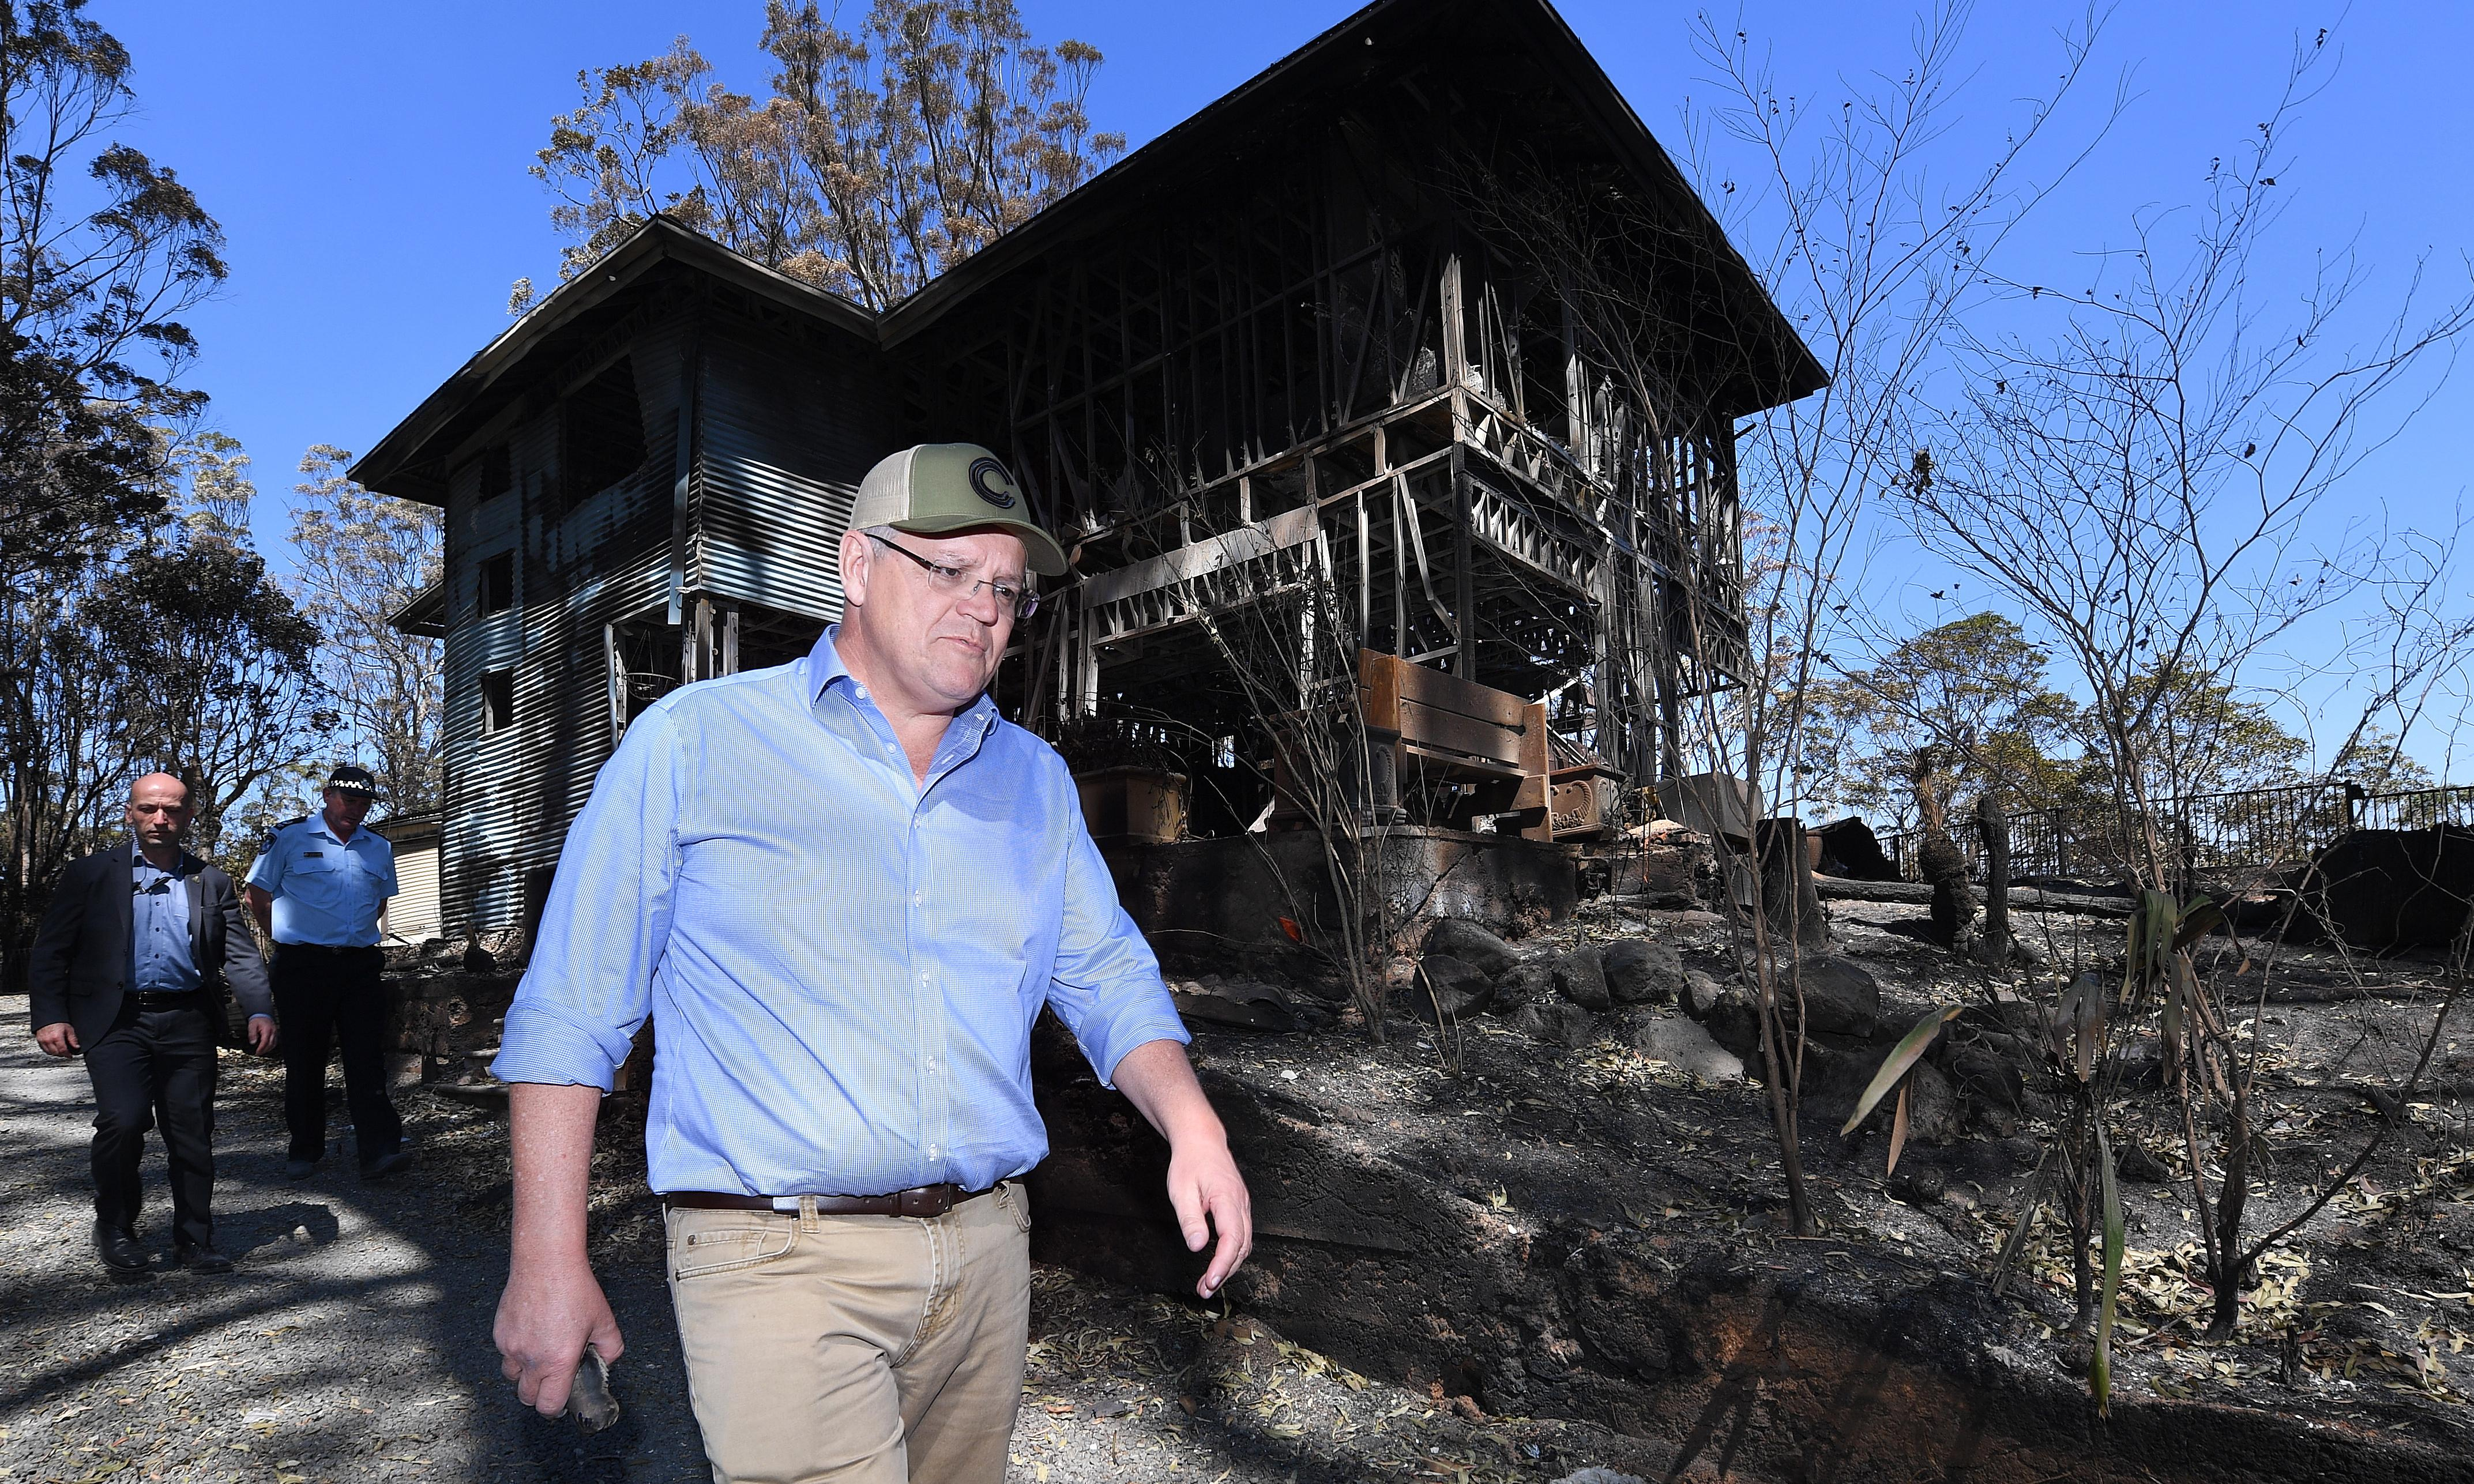 Scott Morrison accepts climate a factor in bushfires and defends Coalition policy